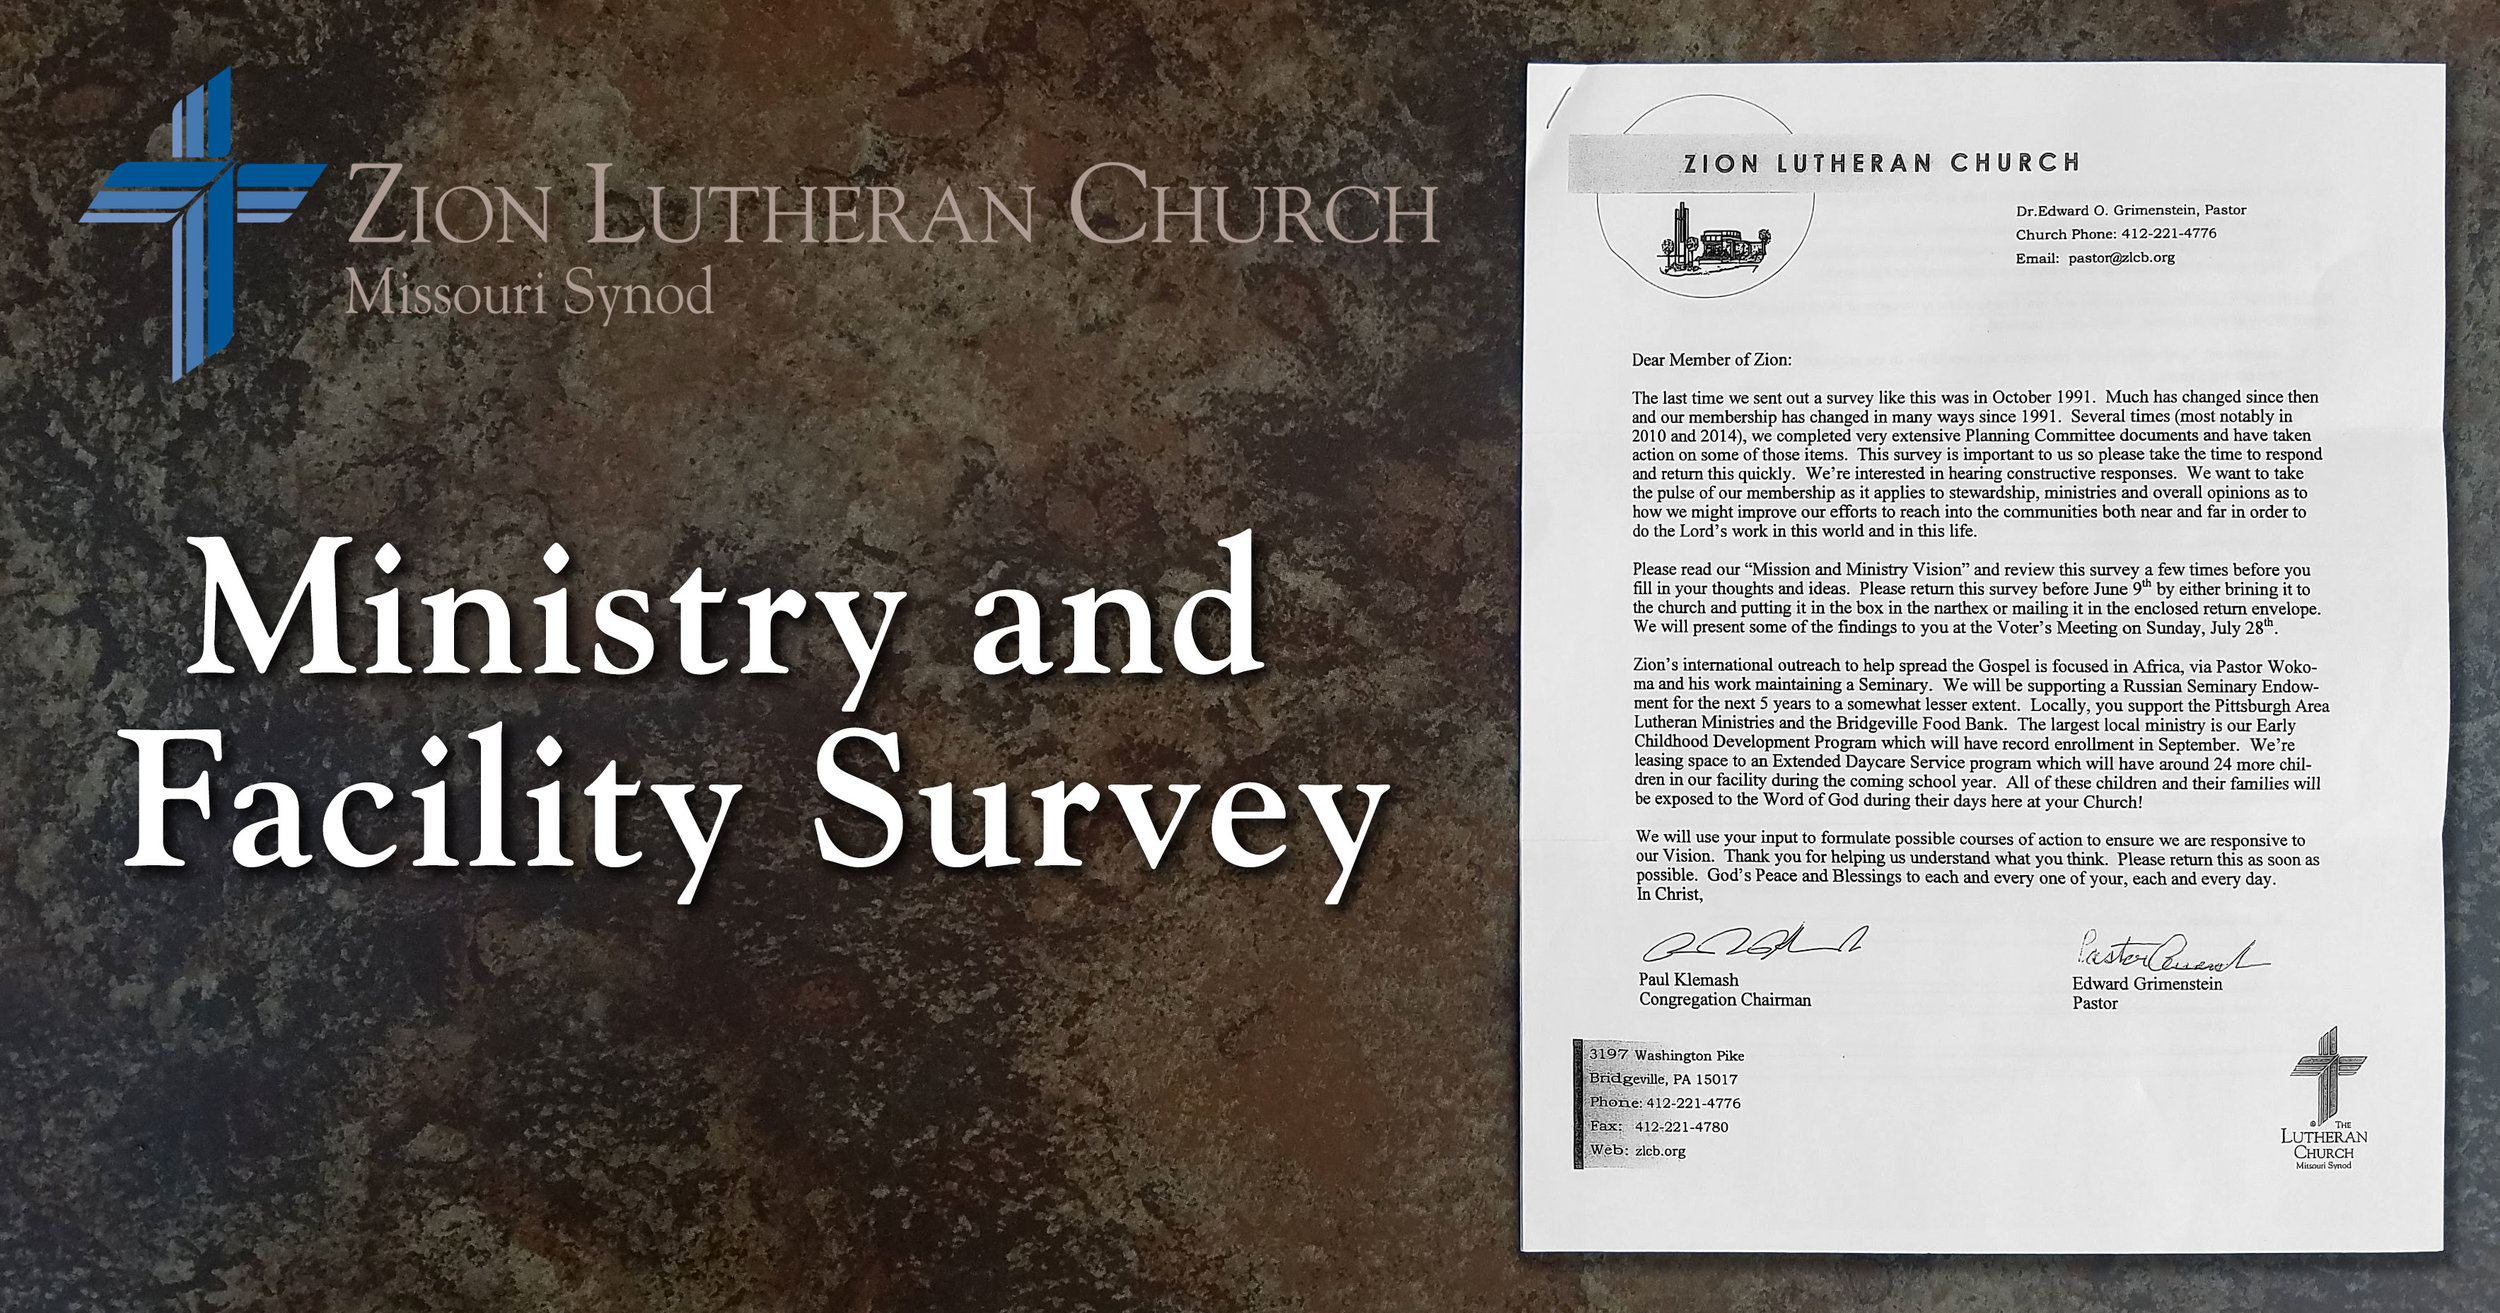 MINISTRY-AND-FACILITY-SURVEY.jpg